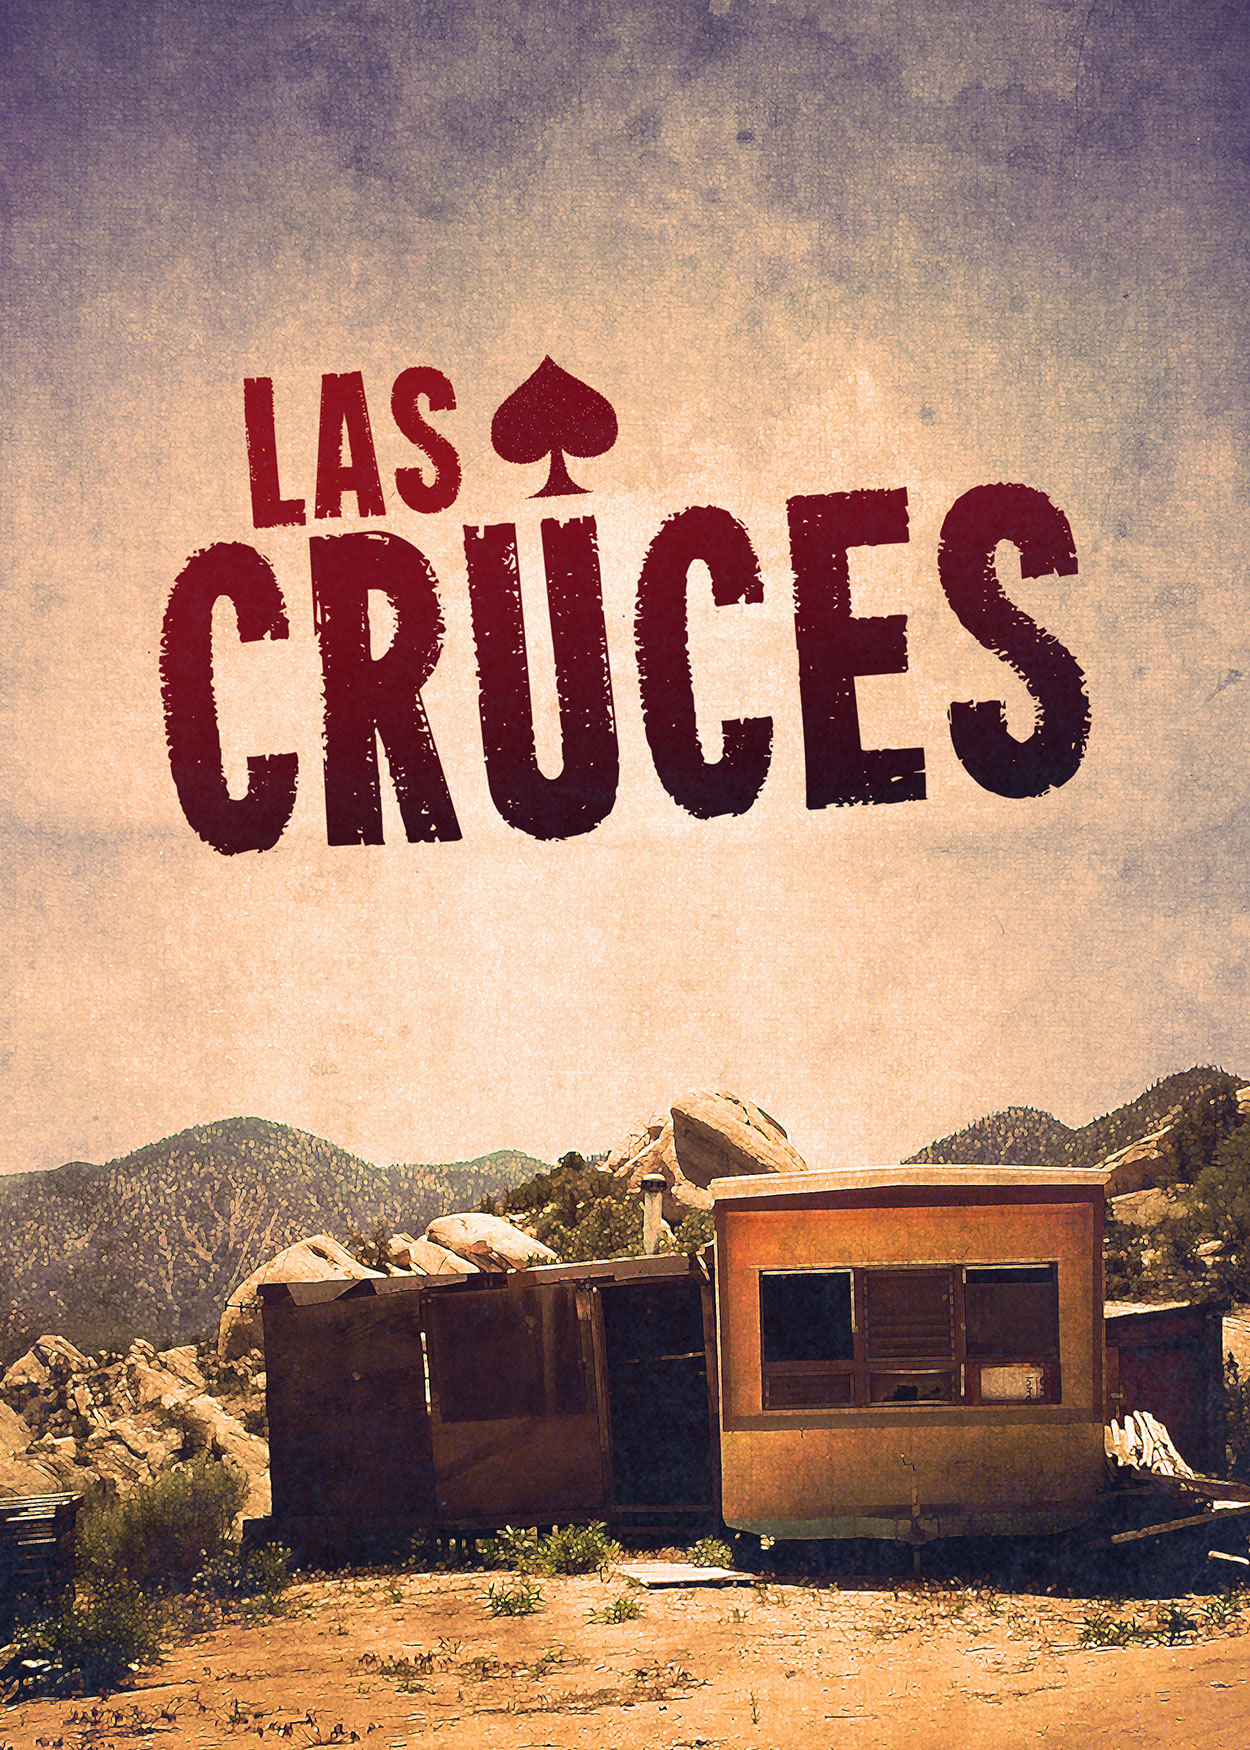 Key Art from Las Cruces (2016). Set in the desert, a small home is at the forefront of the image.